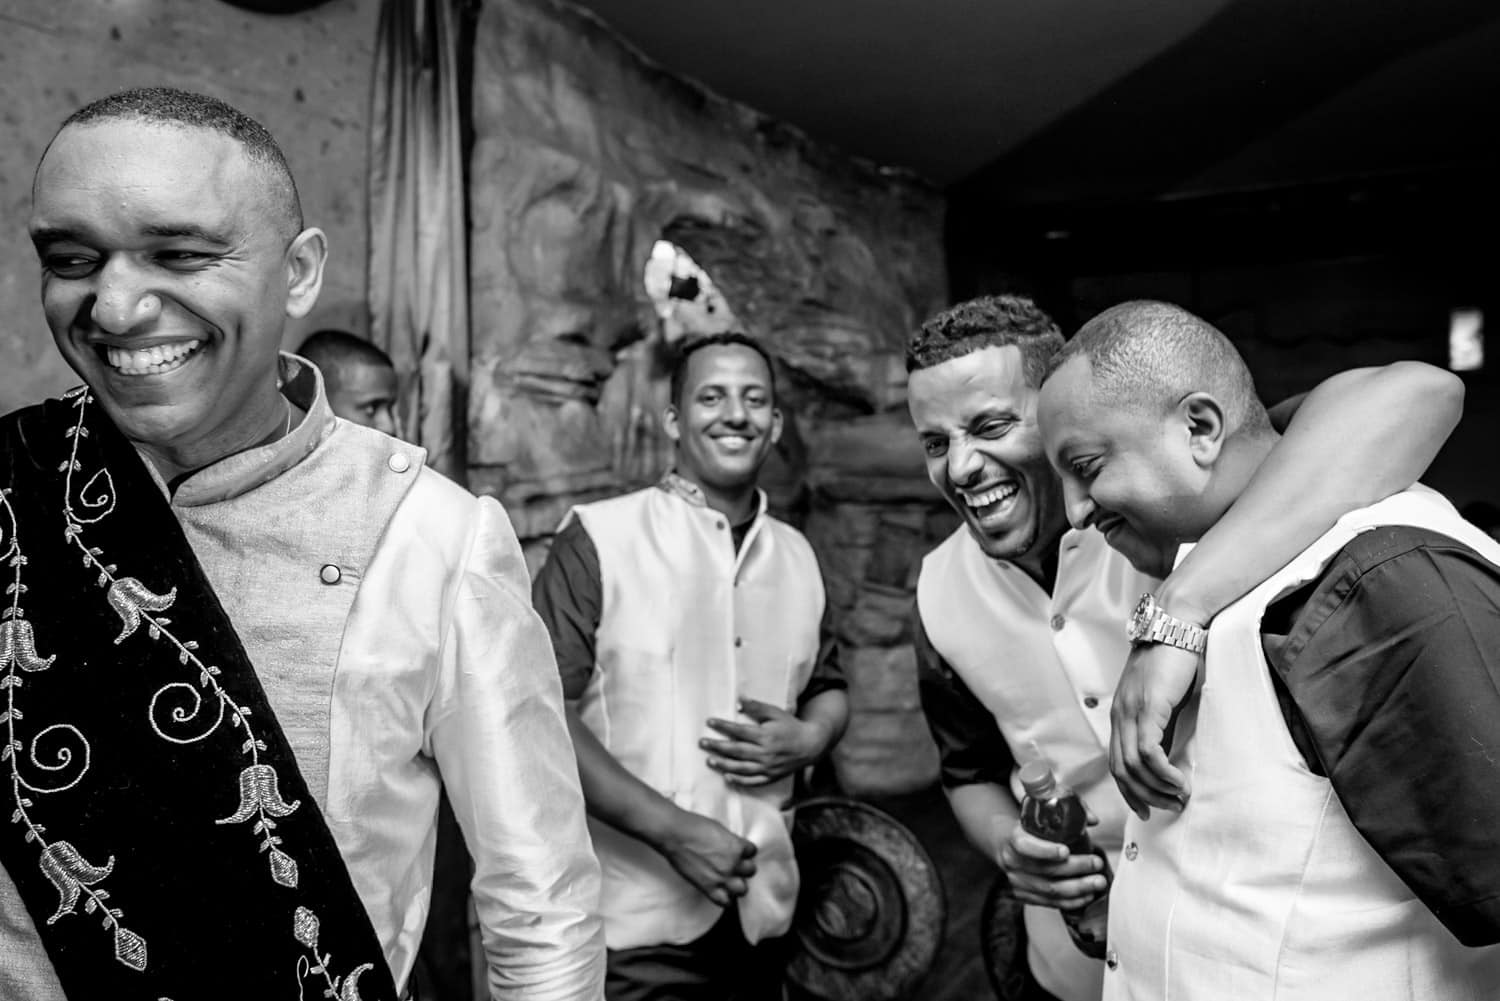 Ethiopian groom laughing with his groomsmen at his wedding